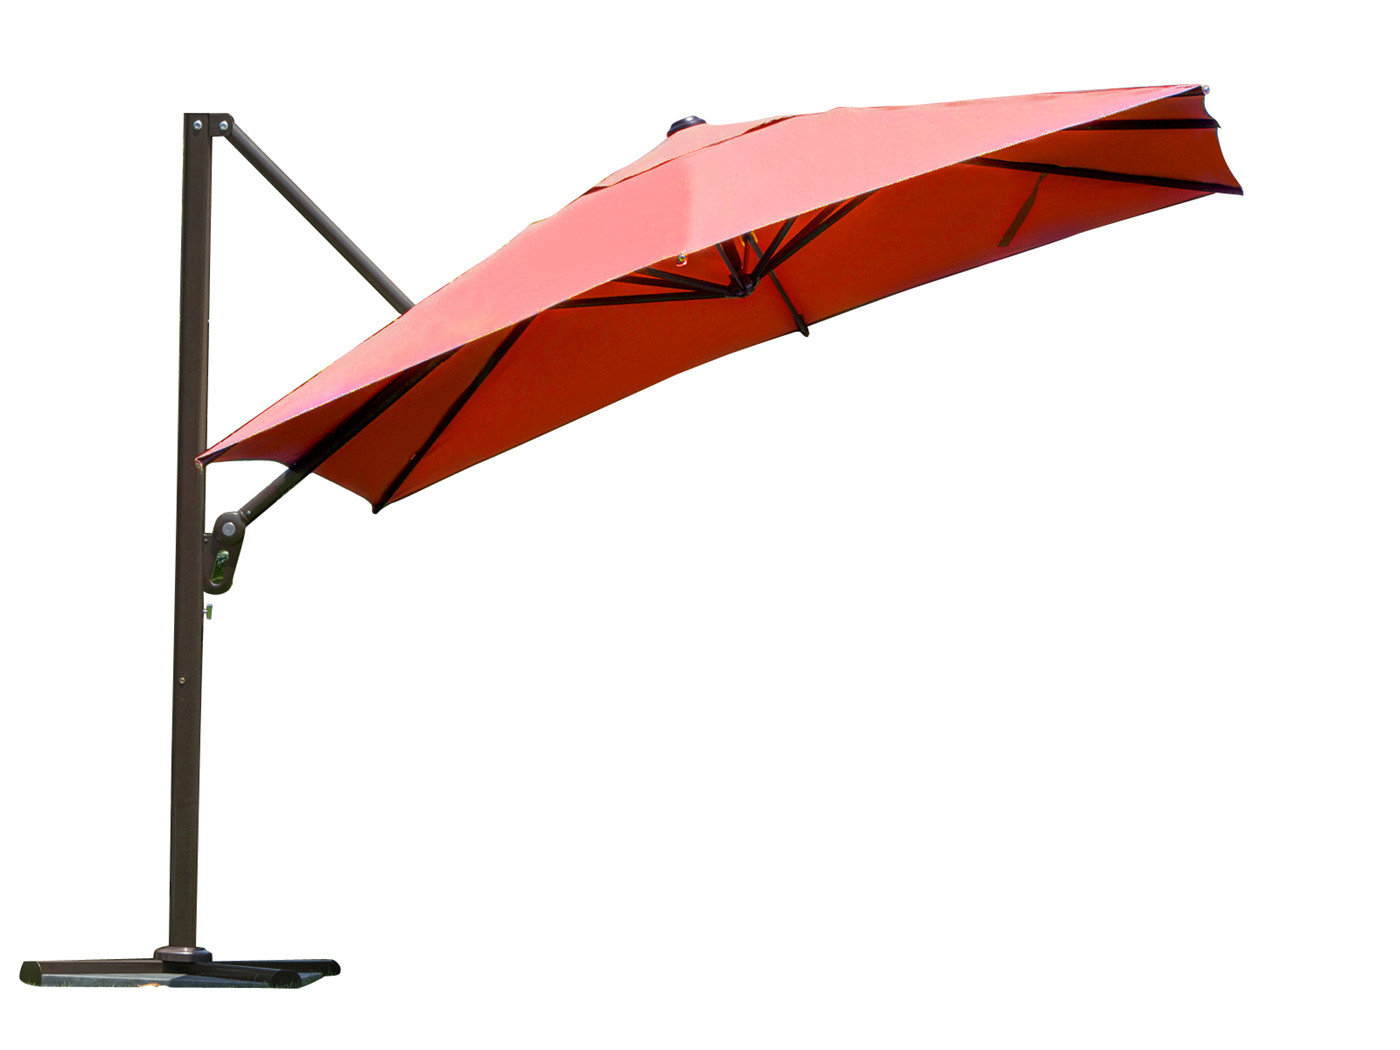 Most Current 9' Square Cantilever Umbrella In Lytham Cantilever Umbrellas (View 17 of 20)